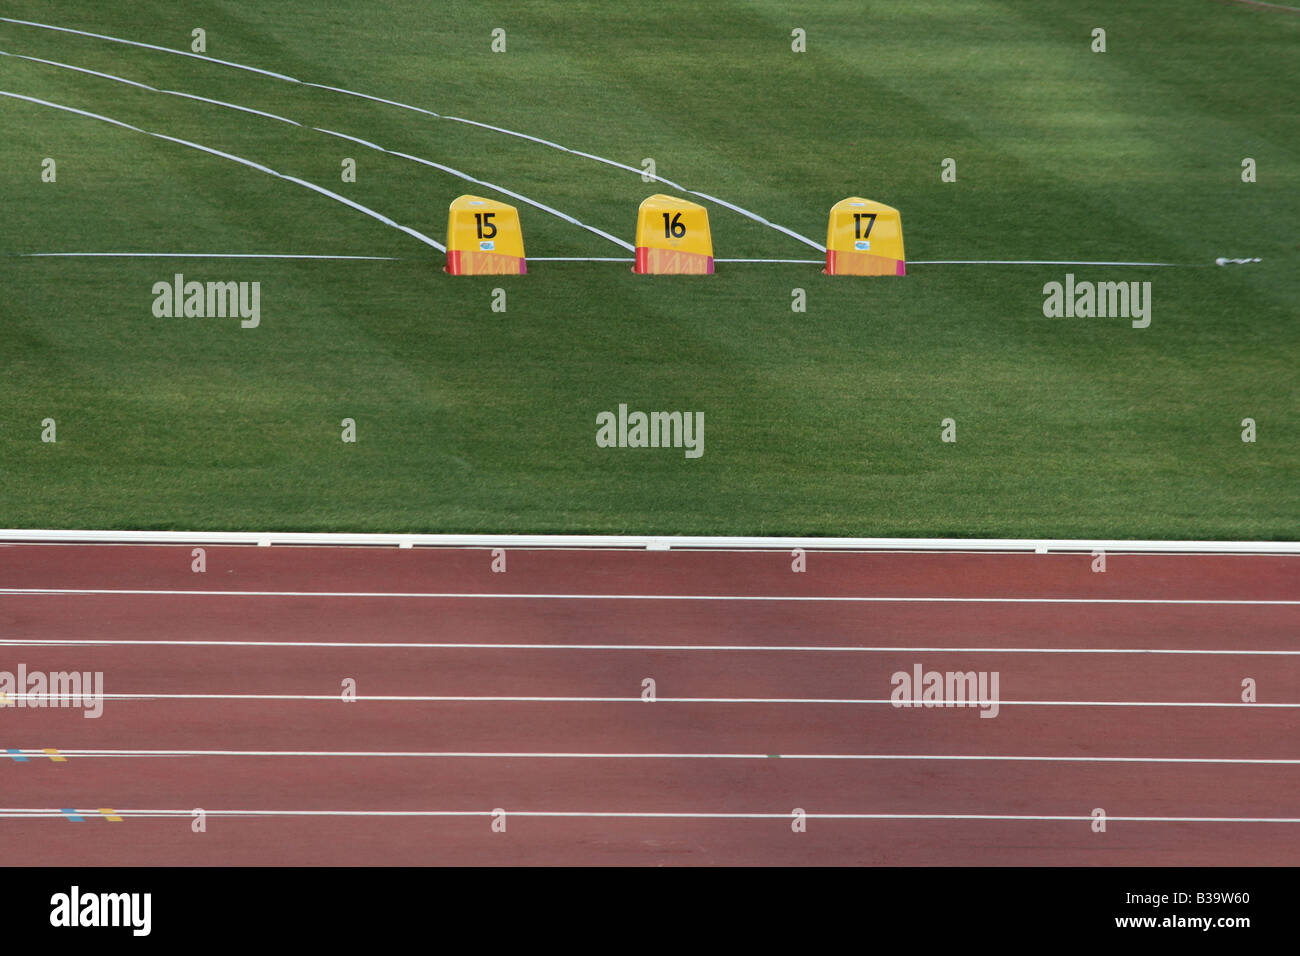 detail from empty athletics race track and field - Stock Image